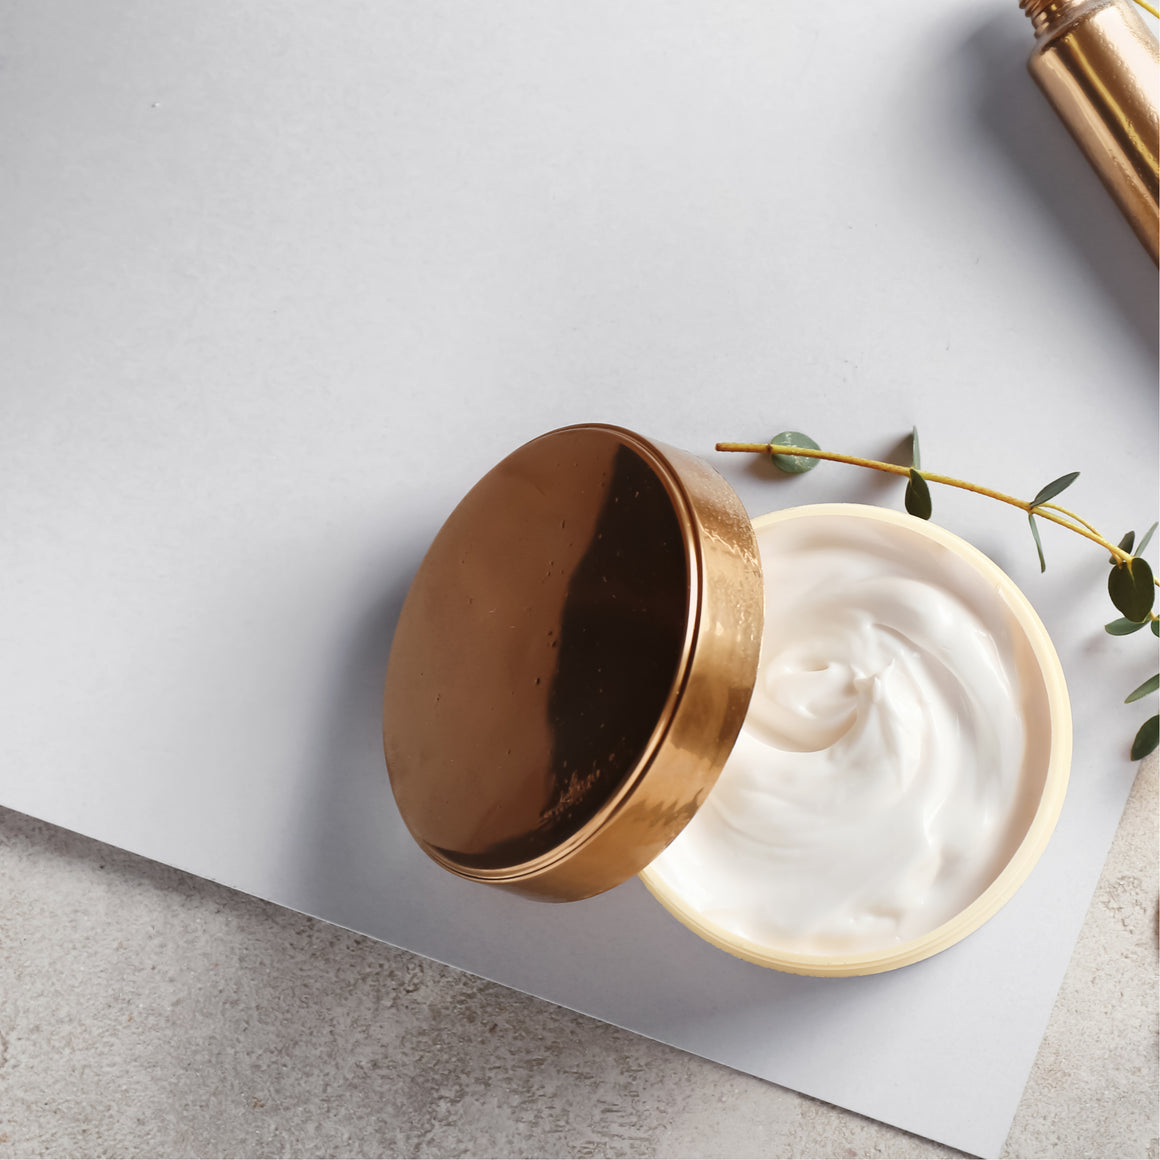 24K Gold Cream For Youthful Skin